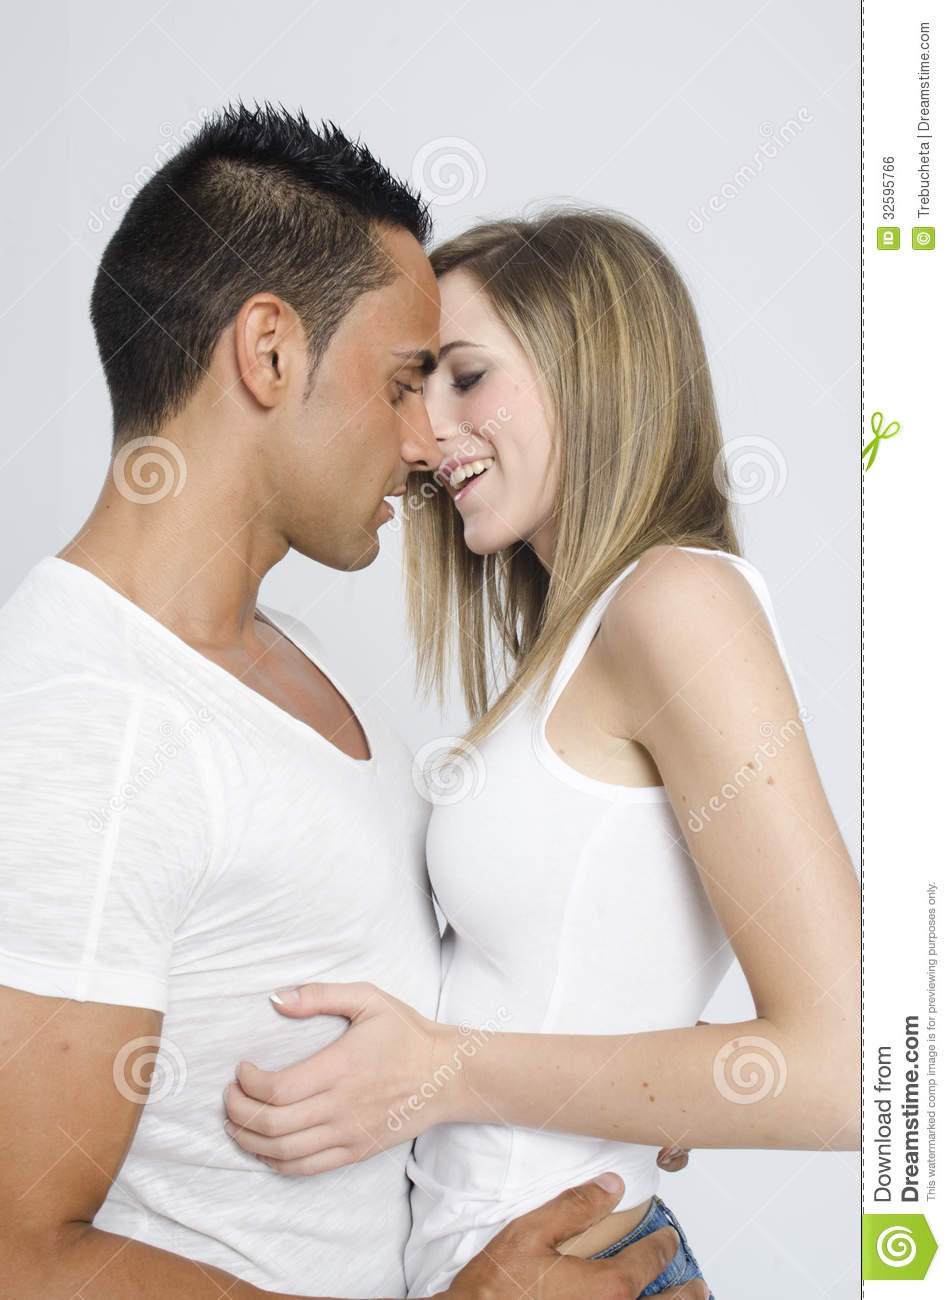 Confirm. happens. Yung girls hote sex love kissing sexy photo